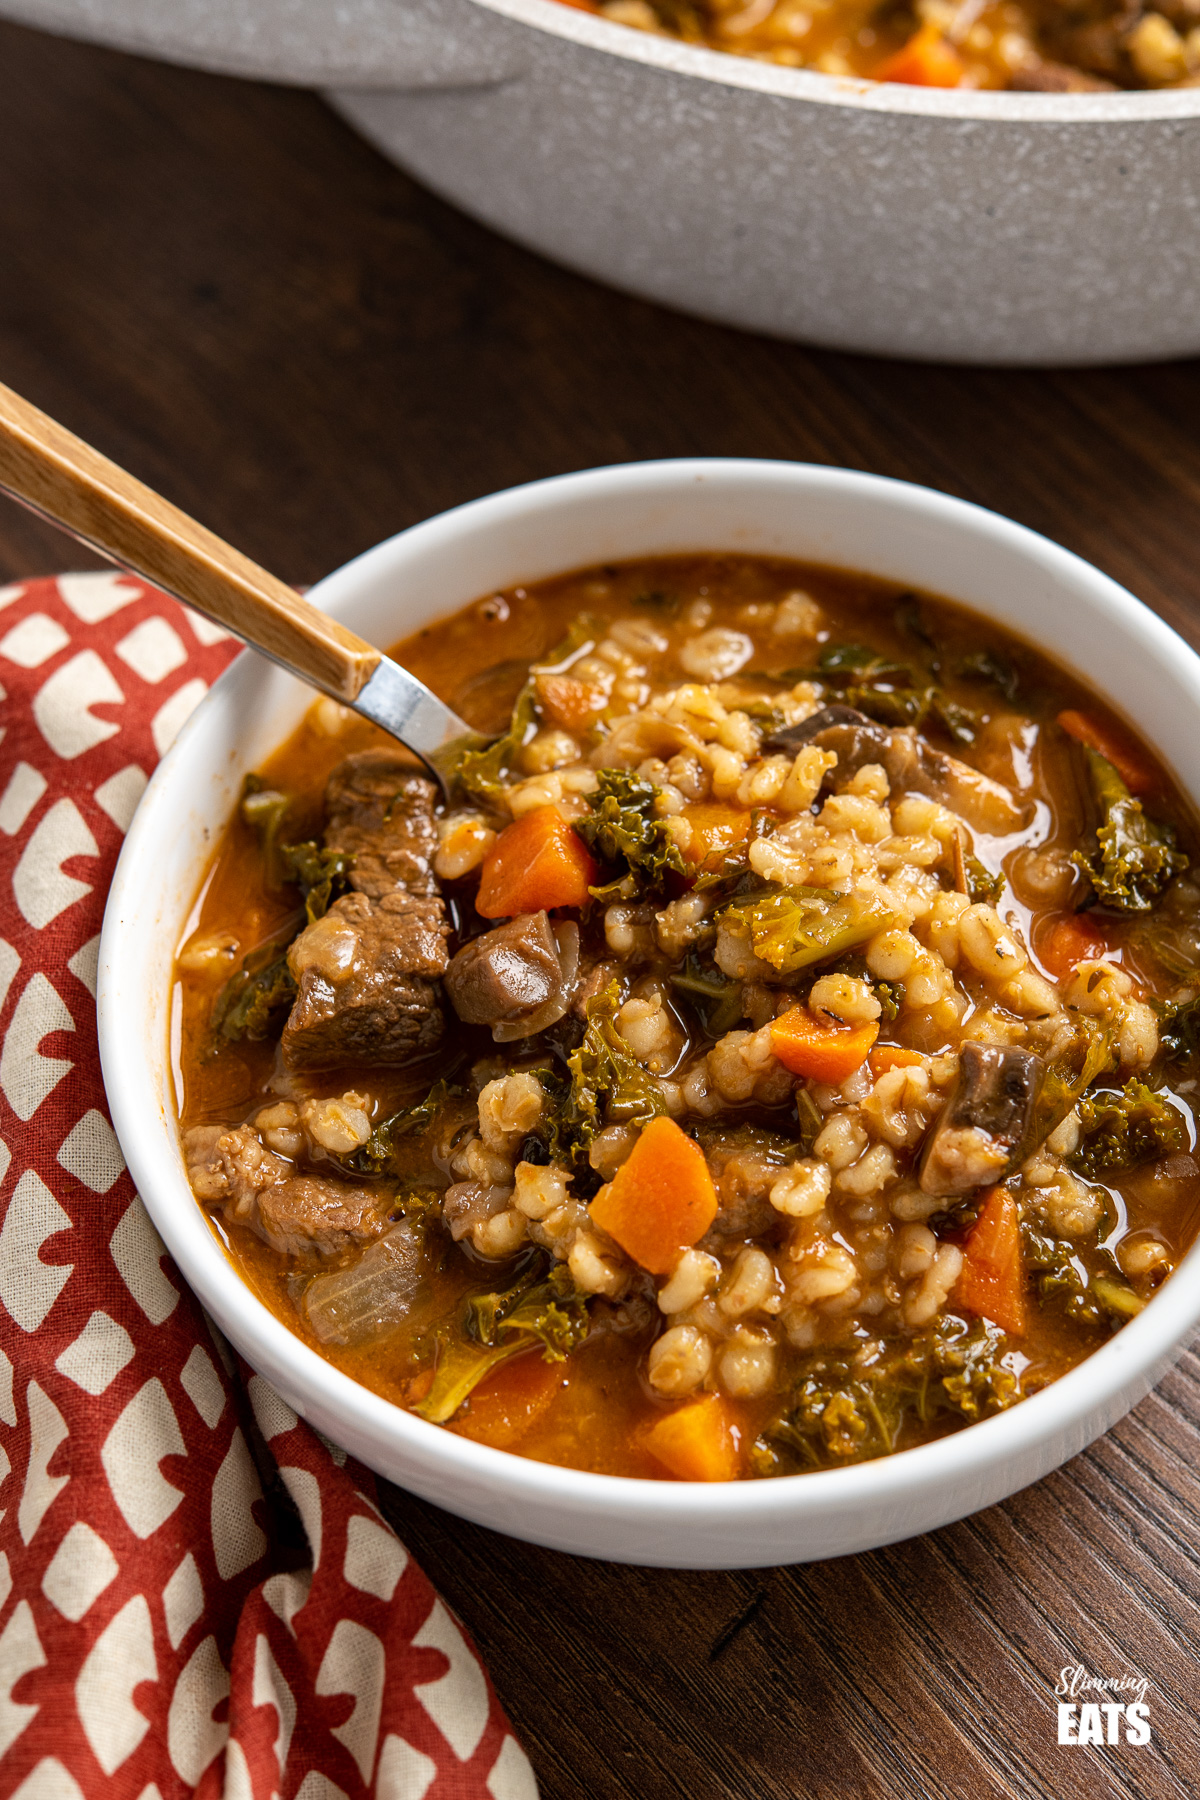 beef and barley stew in white bowl with wooden handled spoon, patterned napkin to the left